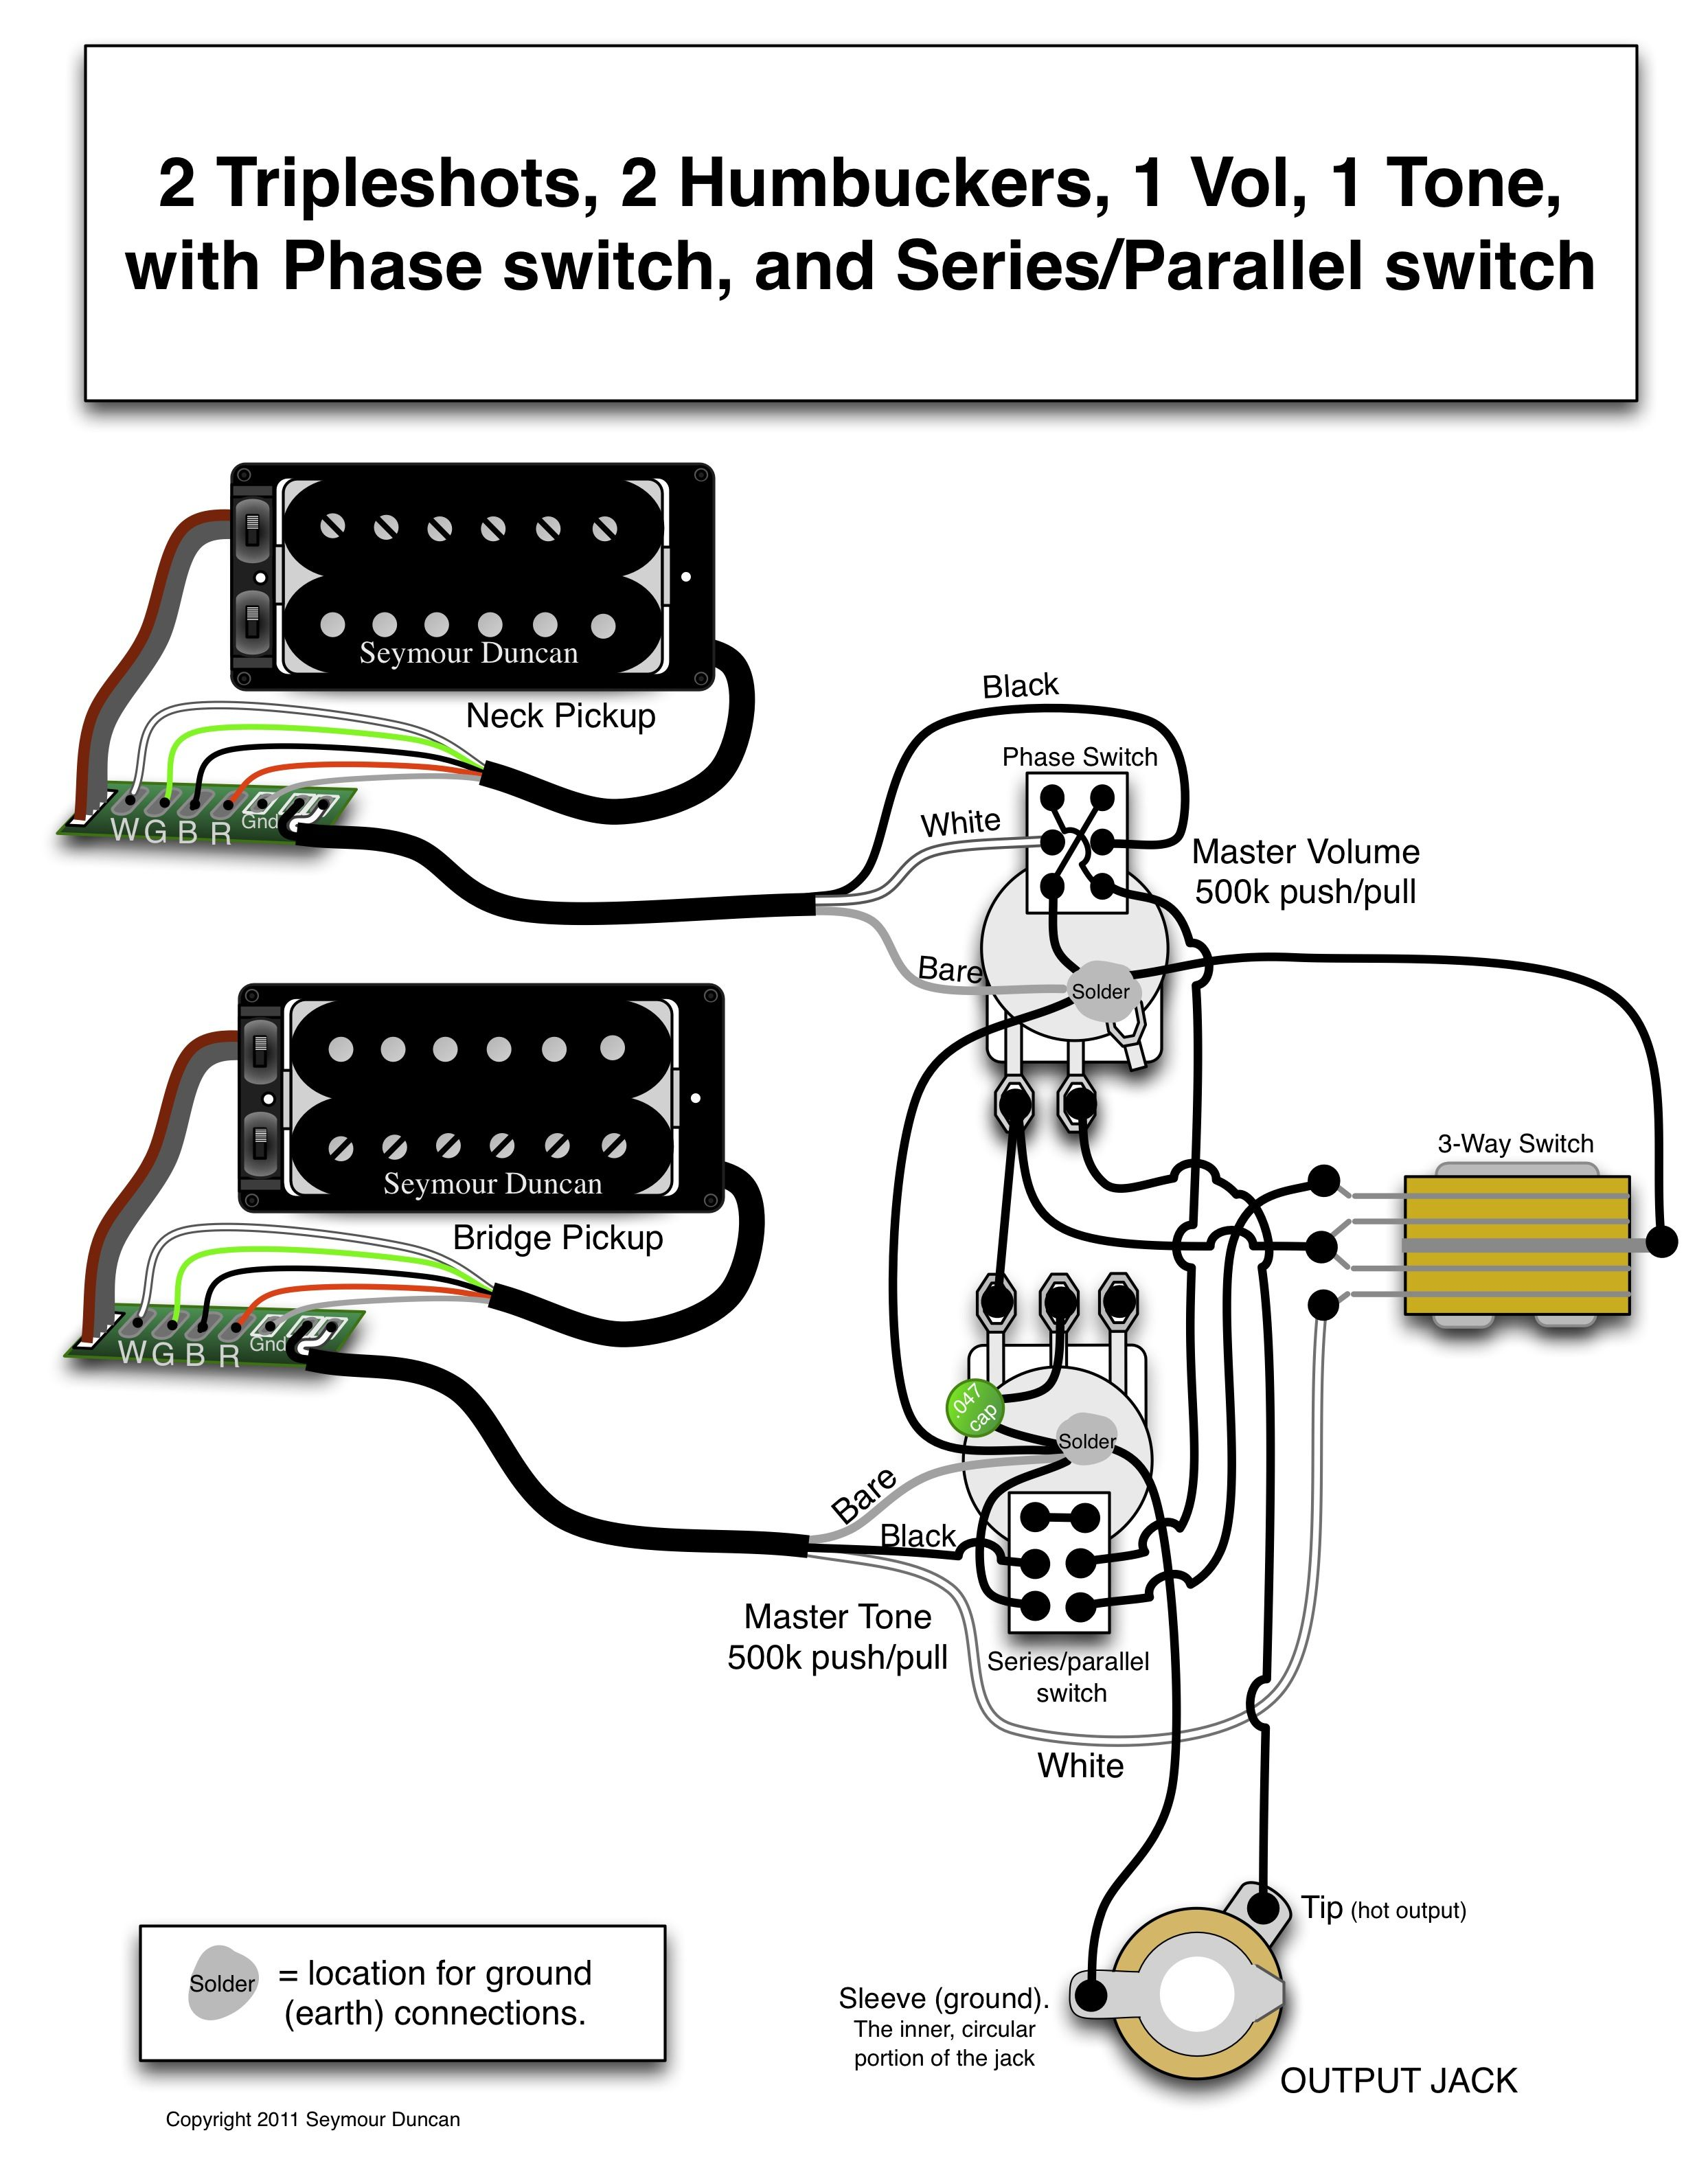 11e7a4ce932088841833425d14ebd2ea seymour duncan wiring diagram 2 triple shots, 2 humbuckers, 1 vintage es-335 wiring diagram at edmiracle.co